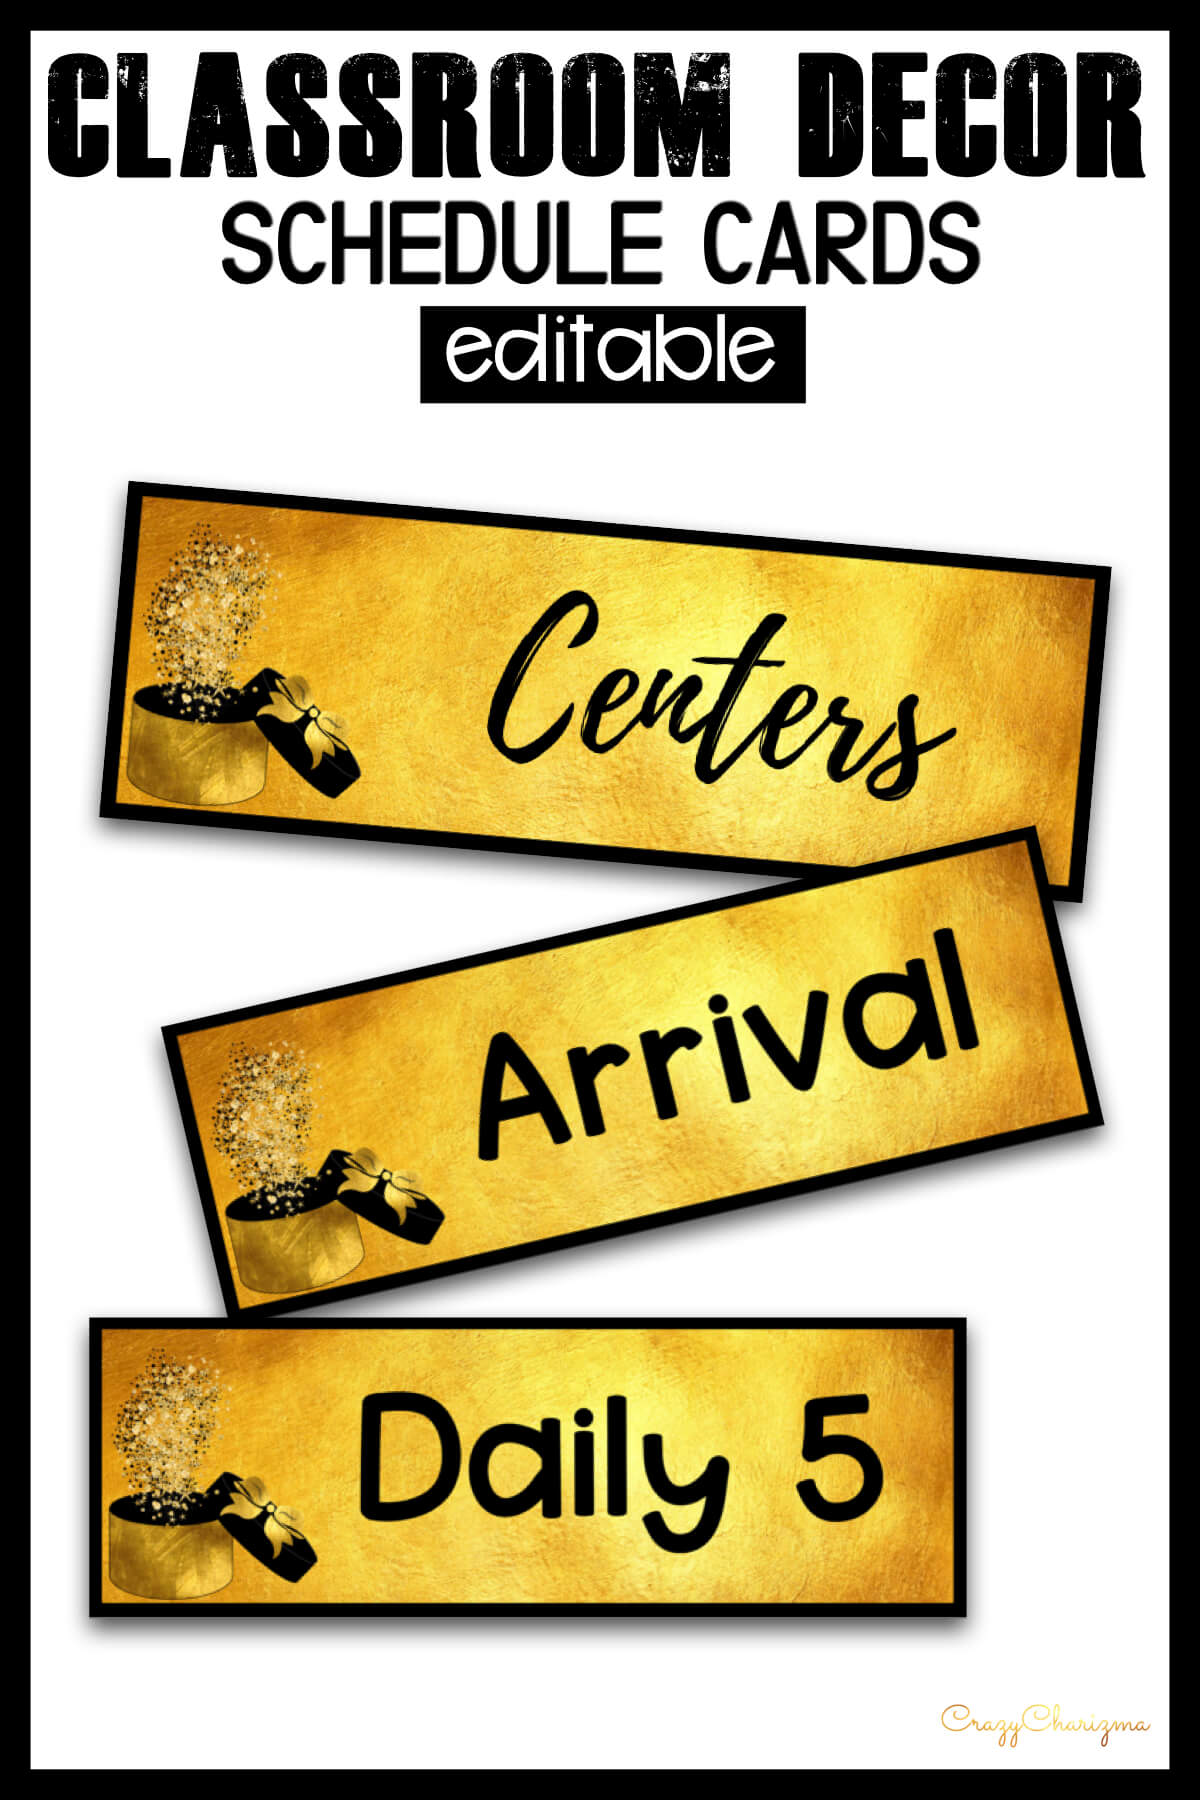 Looking for bright and clear schedule cards? Spice your classroom with this visually appealing classroom decor!